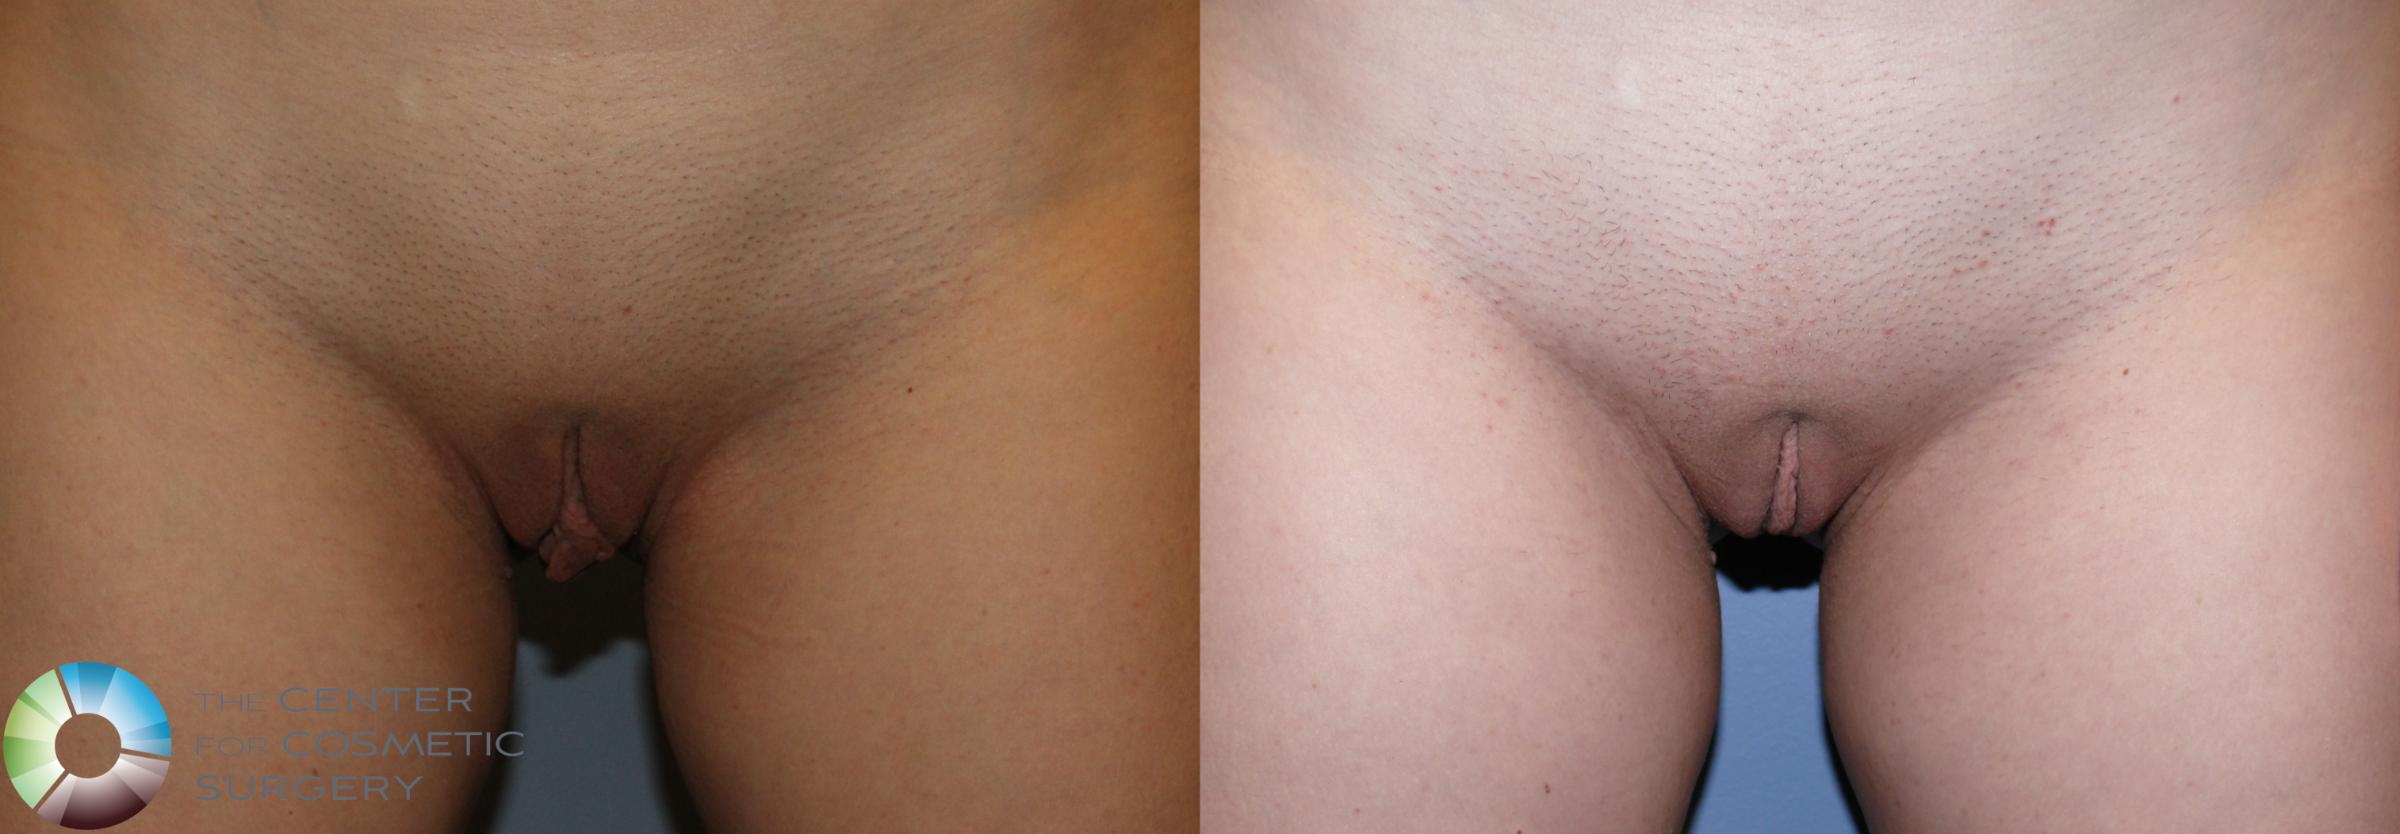 Labiaplasty Case 11223 Before & After Front | Golden, CO | The Center for Cosmetic Surgery